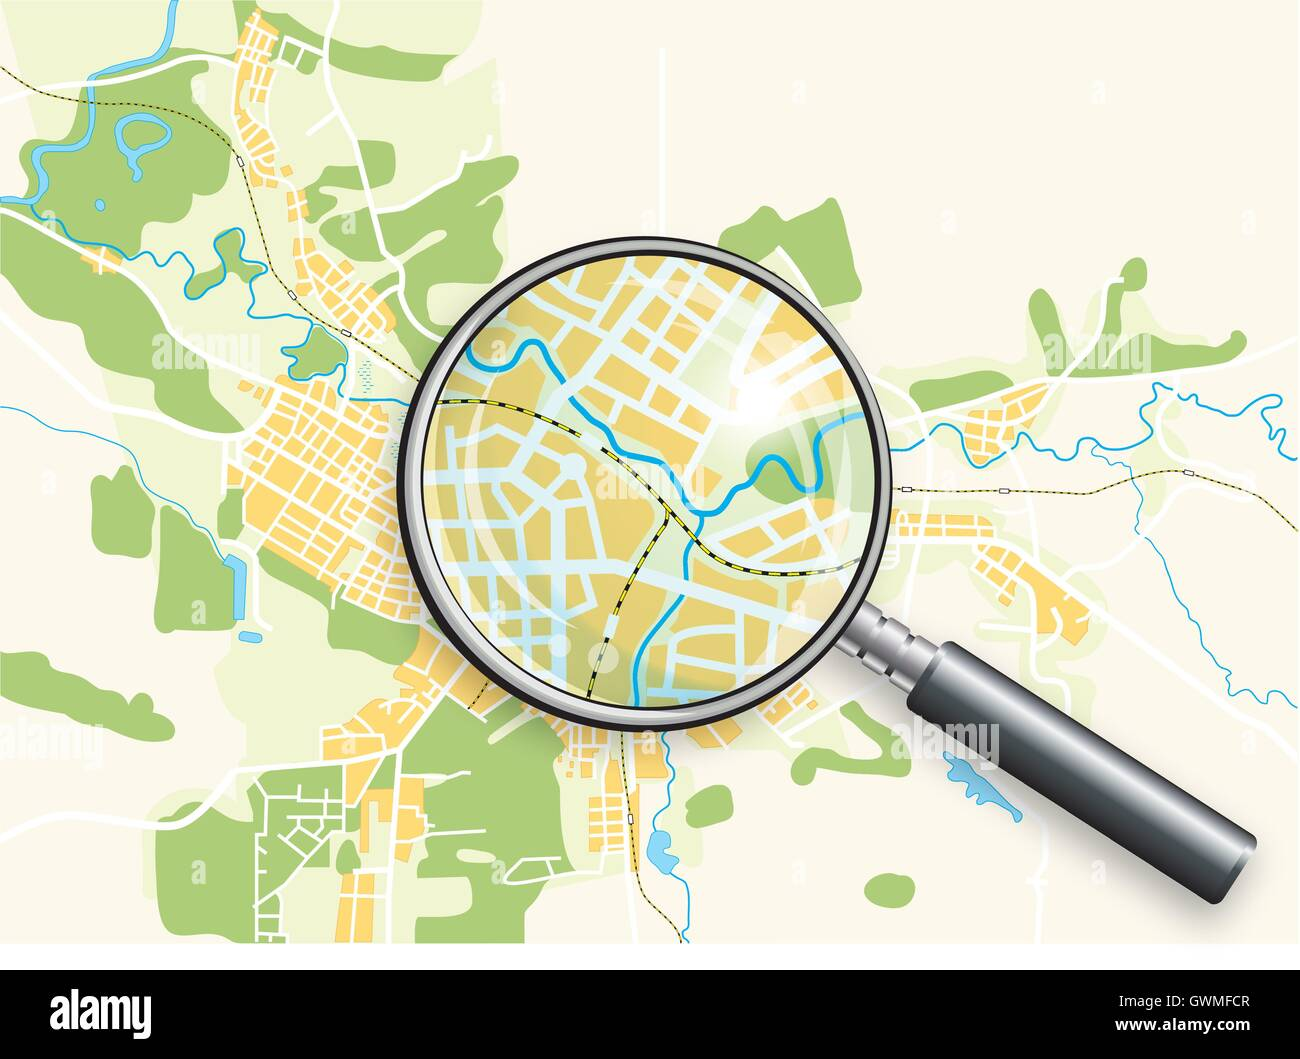 City Geo Map and Magnifying Glass Lens. Color bright decorative background vector illustration. - Stock Vector